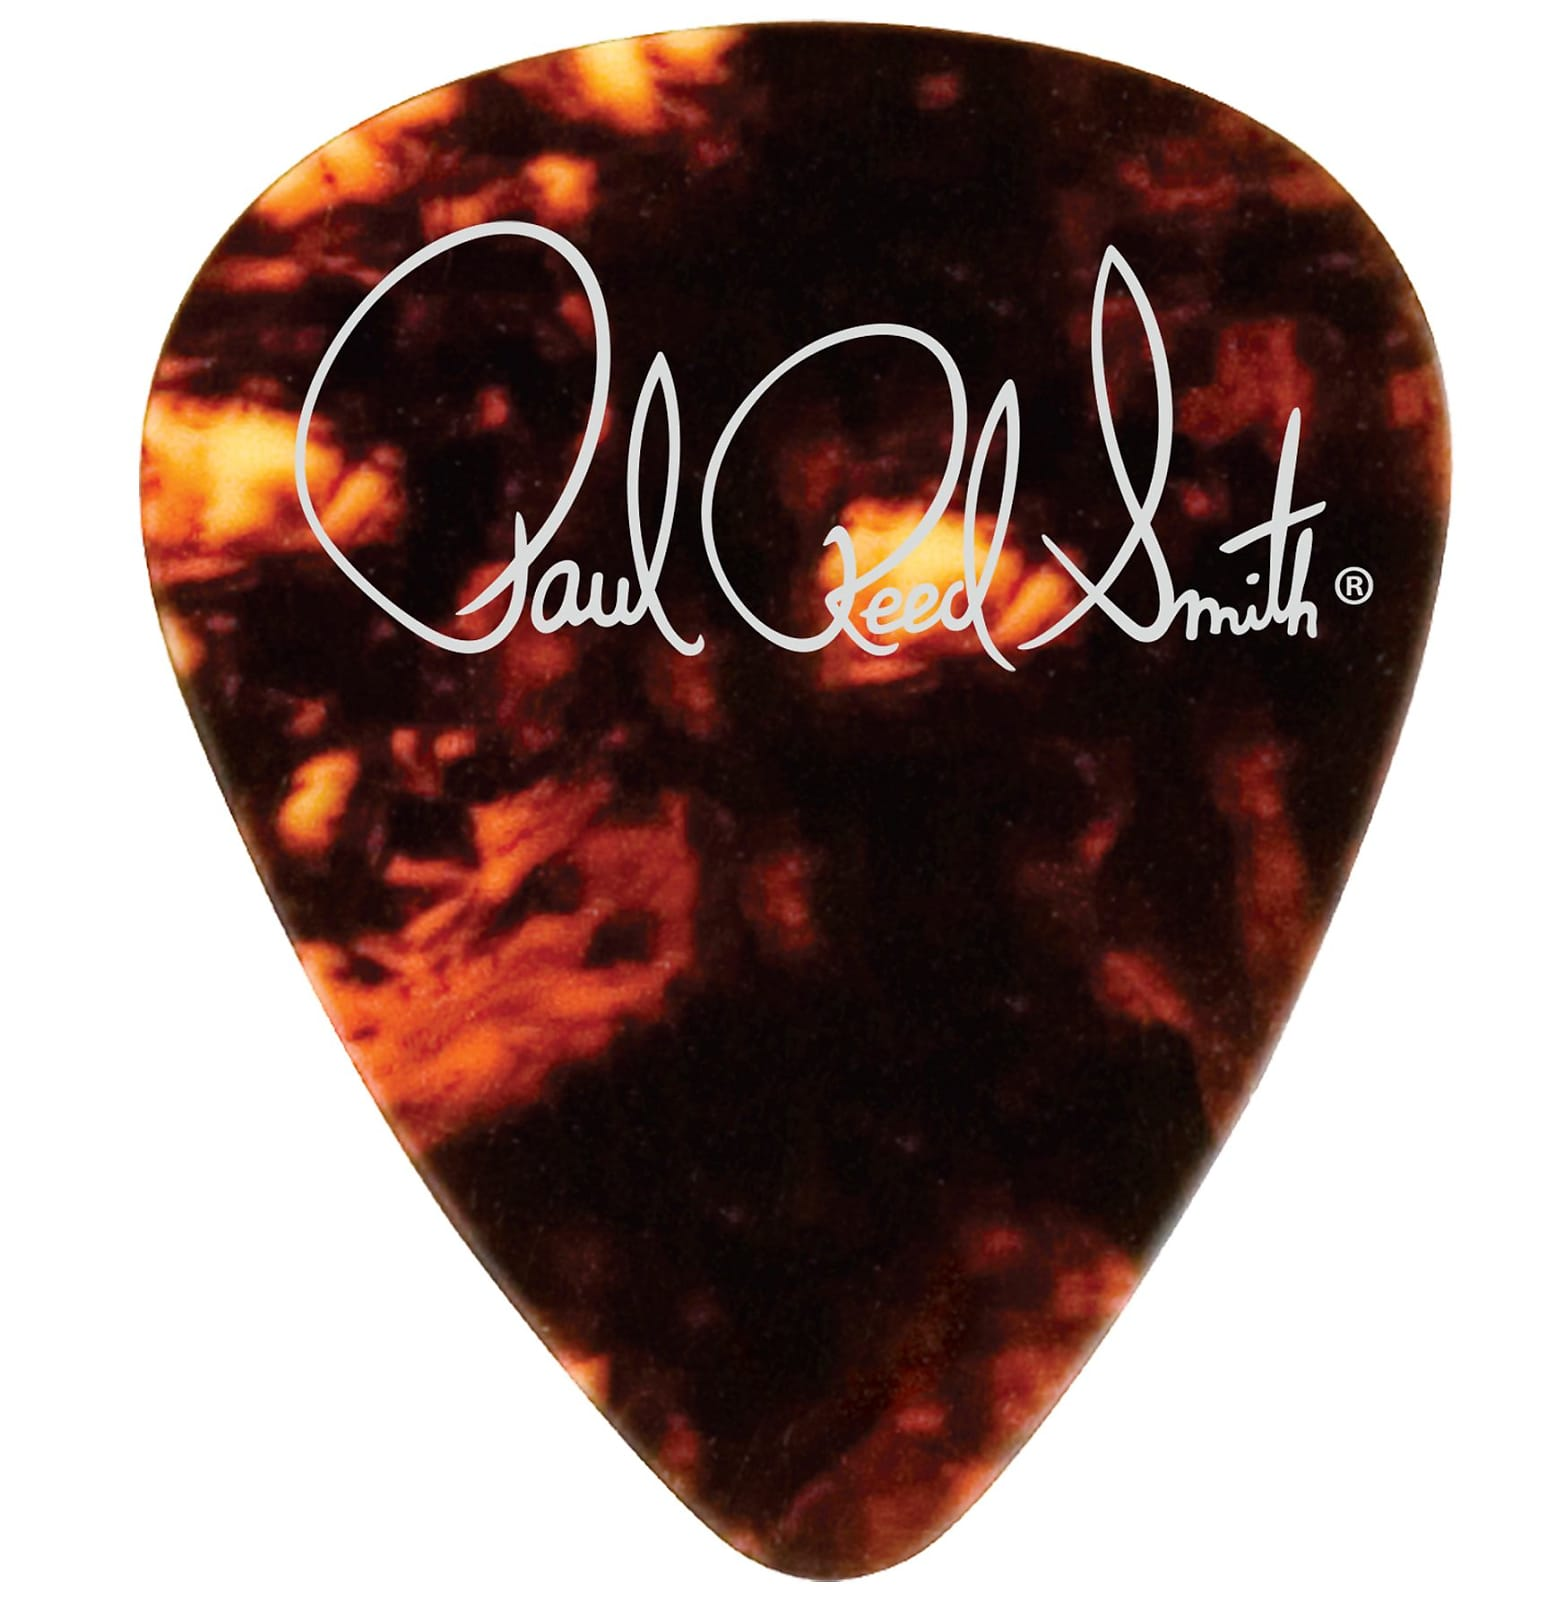 Paul Reed Smith PRS Tortoise Celluloid Guitar Picks (12) – Thin